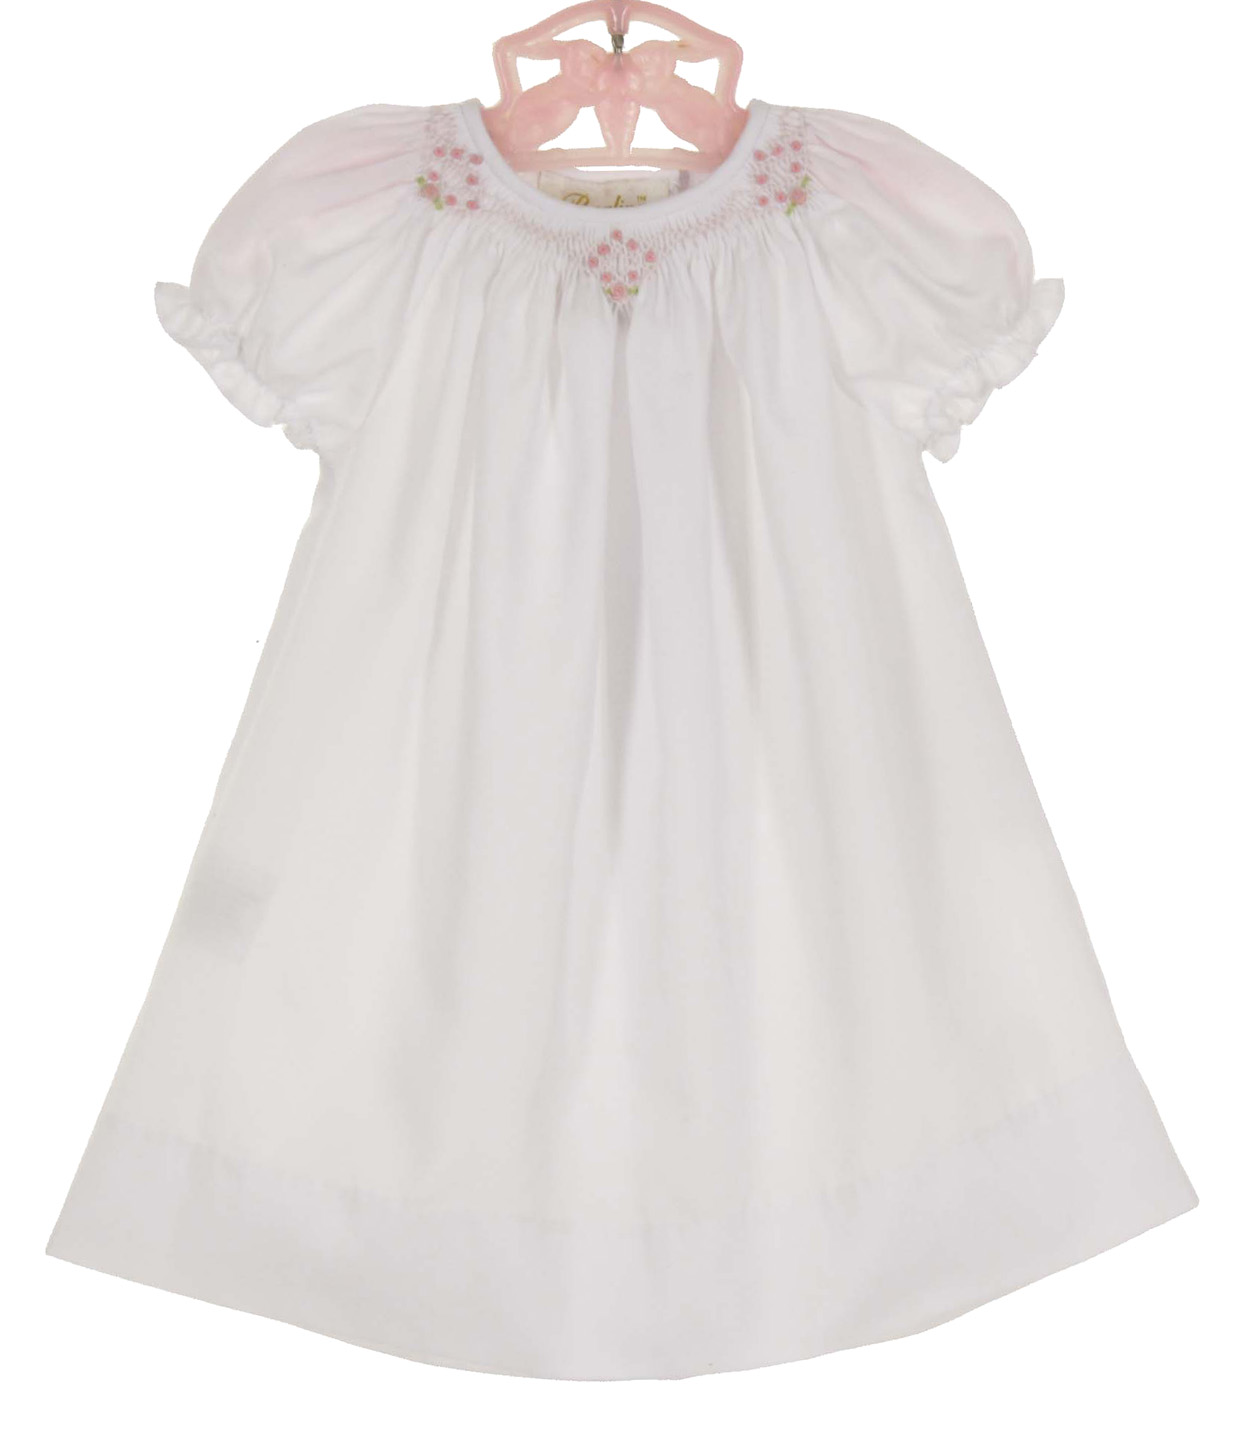 b434699fd Rosalina white bishop smocked daygown with pink embroidered rosebuds ...